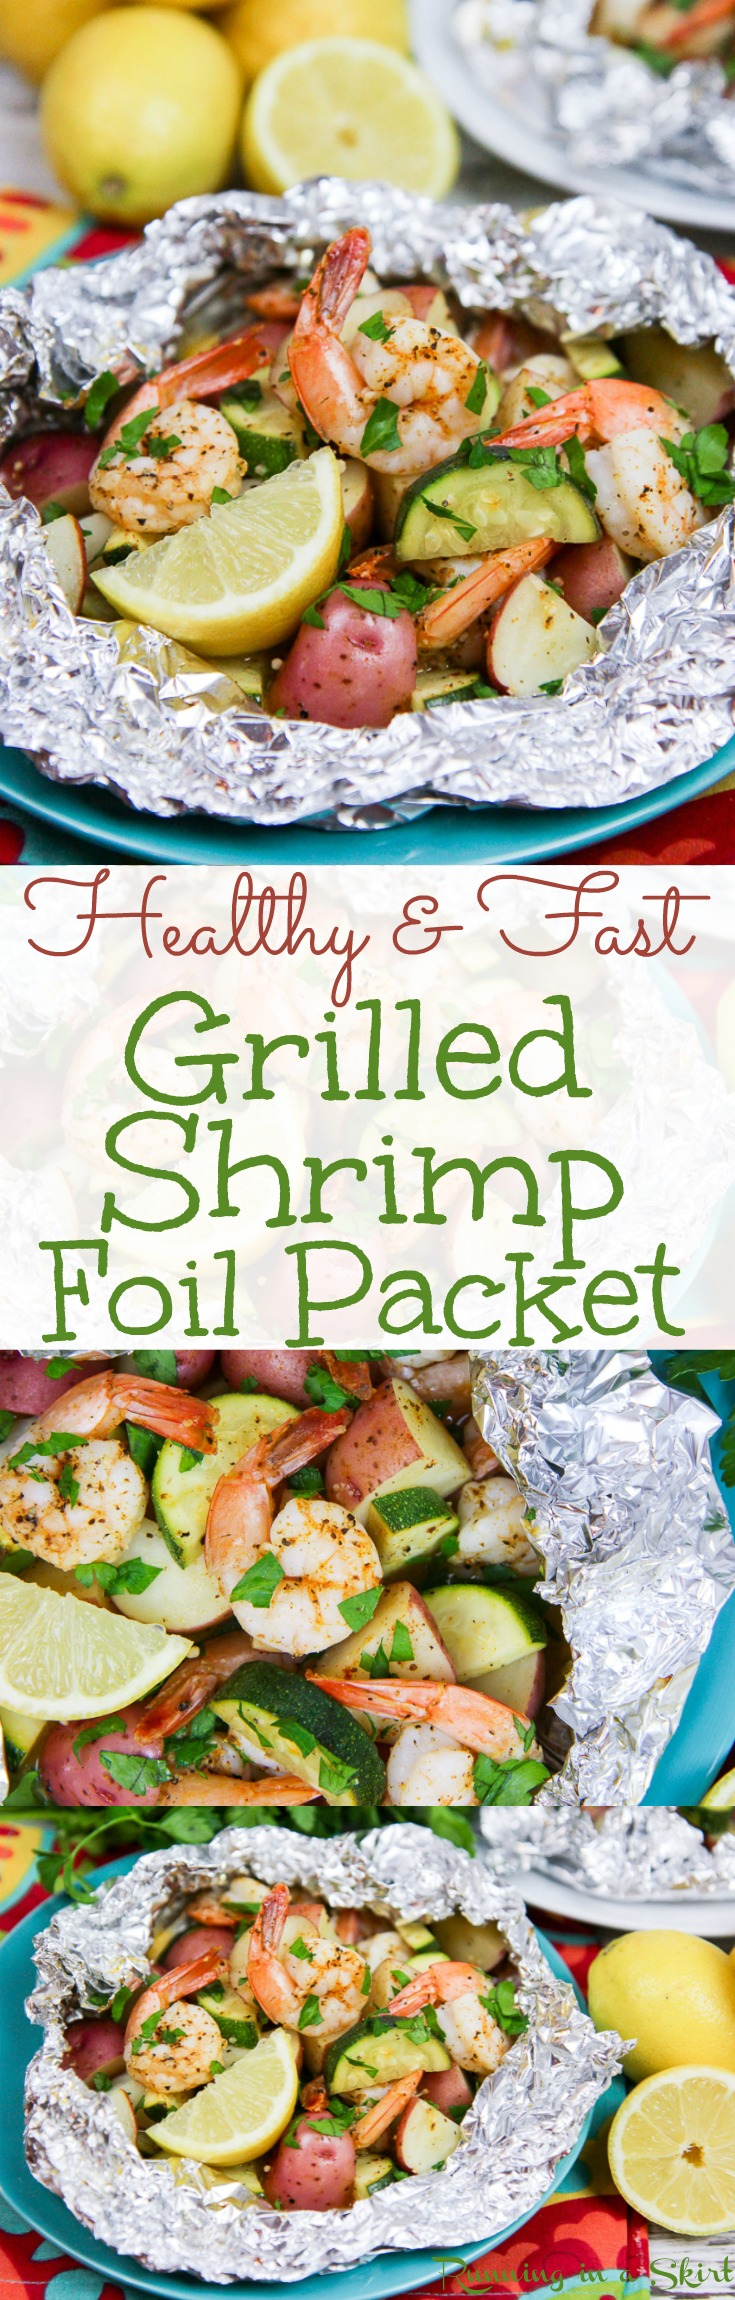 Healthy Low Country Boil Style Foil Packet Shrimp. No butter only olive oils, Old Bay & lemon! Pescatarian version uses zucchini instead of sausage - a complete meal or dinner with vegetables. Even fun for camping recipes. Grill or oven bake! Gluten free / Running in a Skirt via @juliewunder